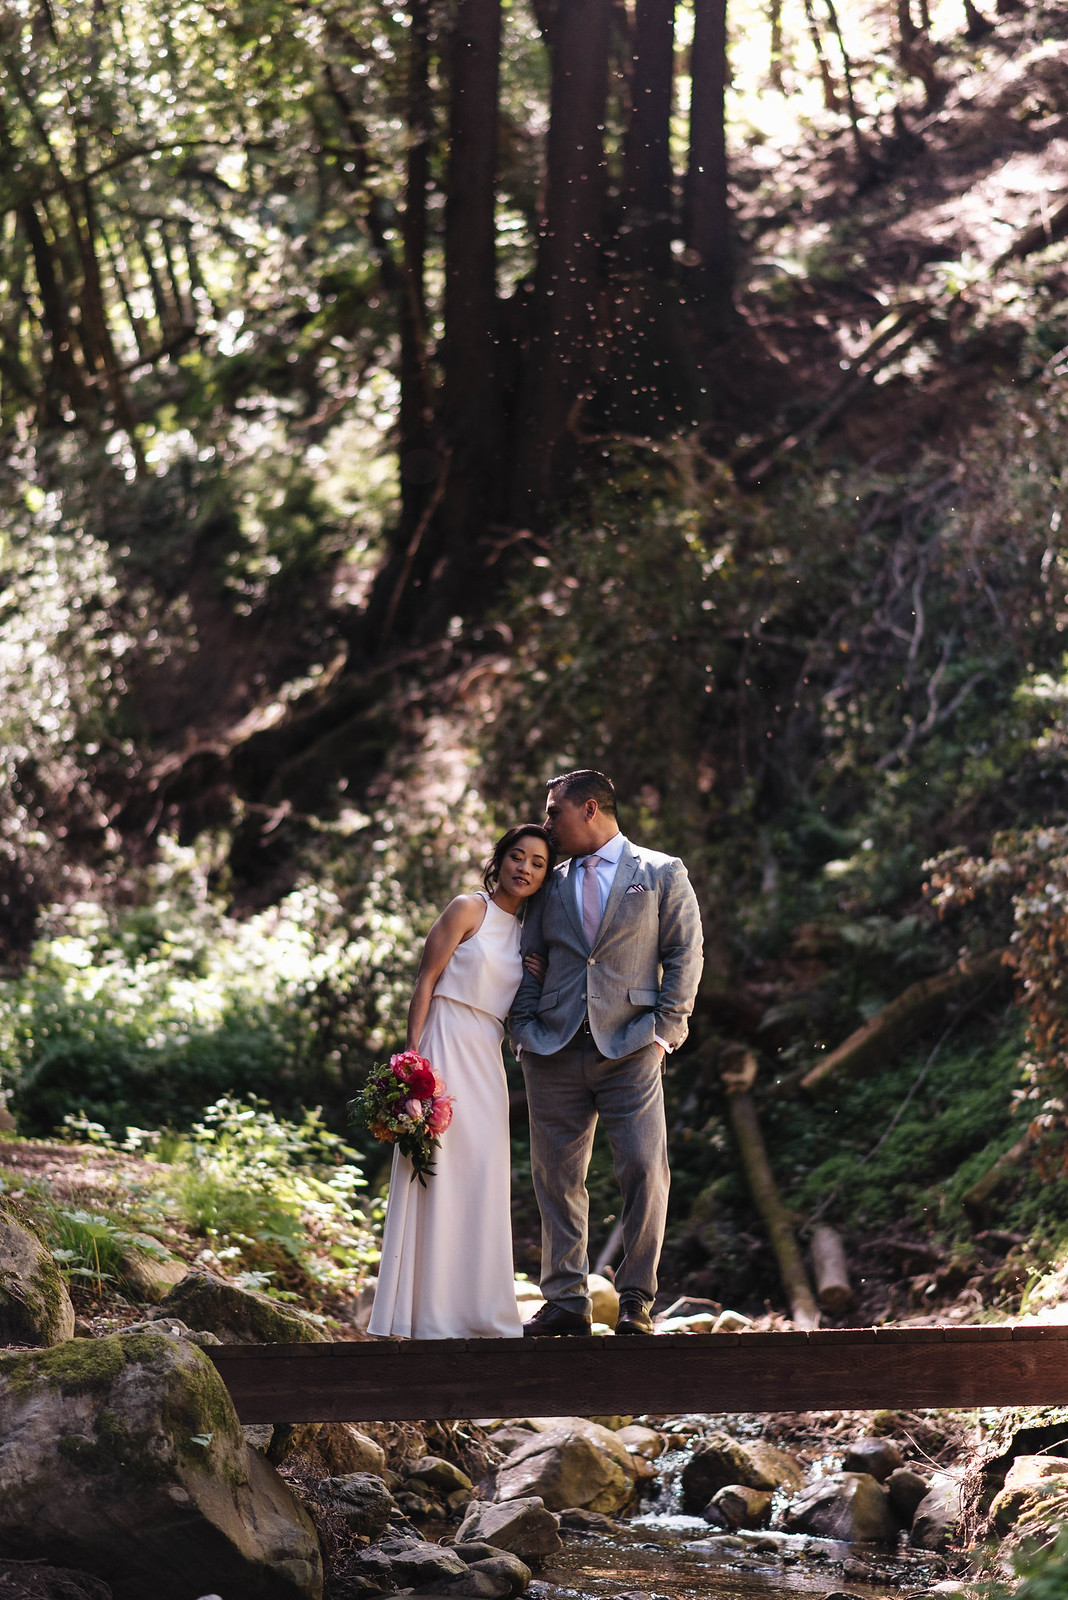 First Look in the California Redwoods on juliettelaura.com